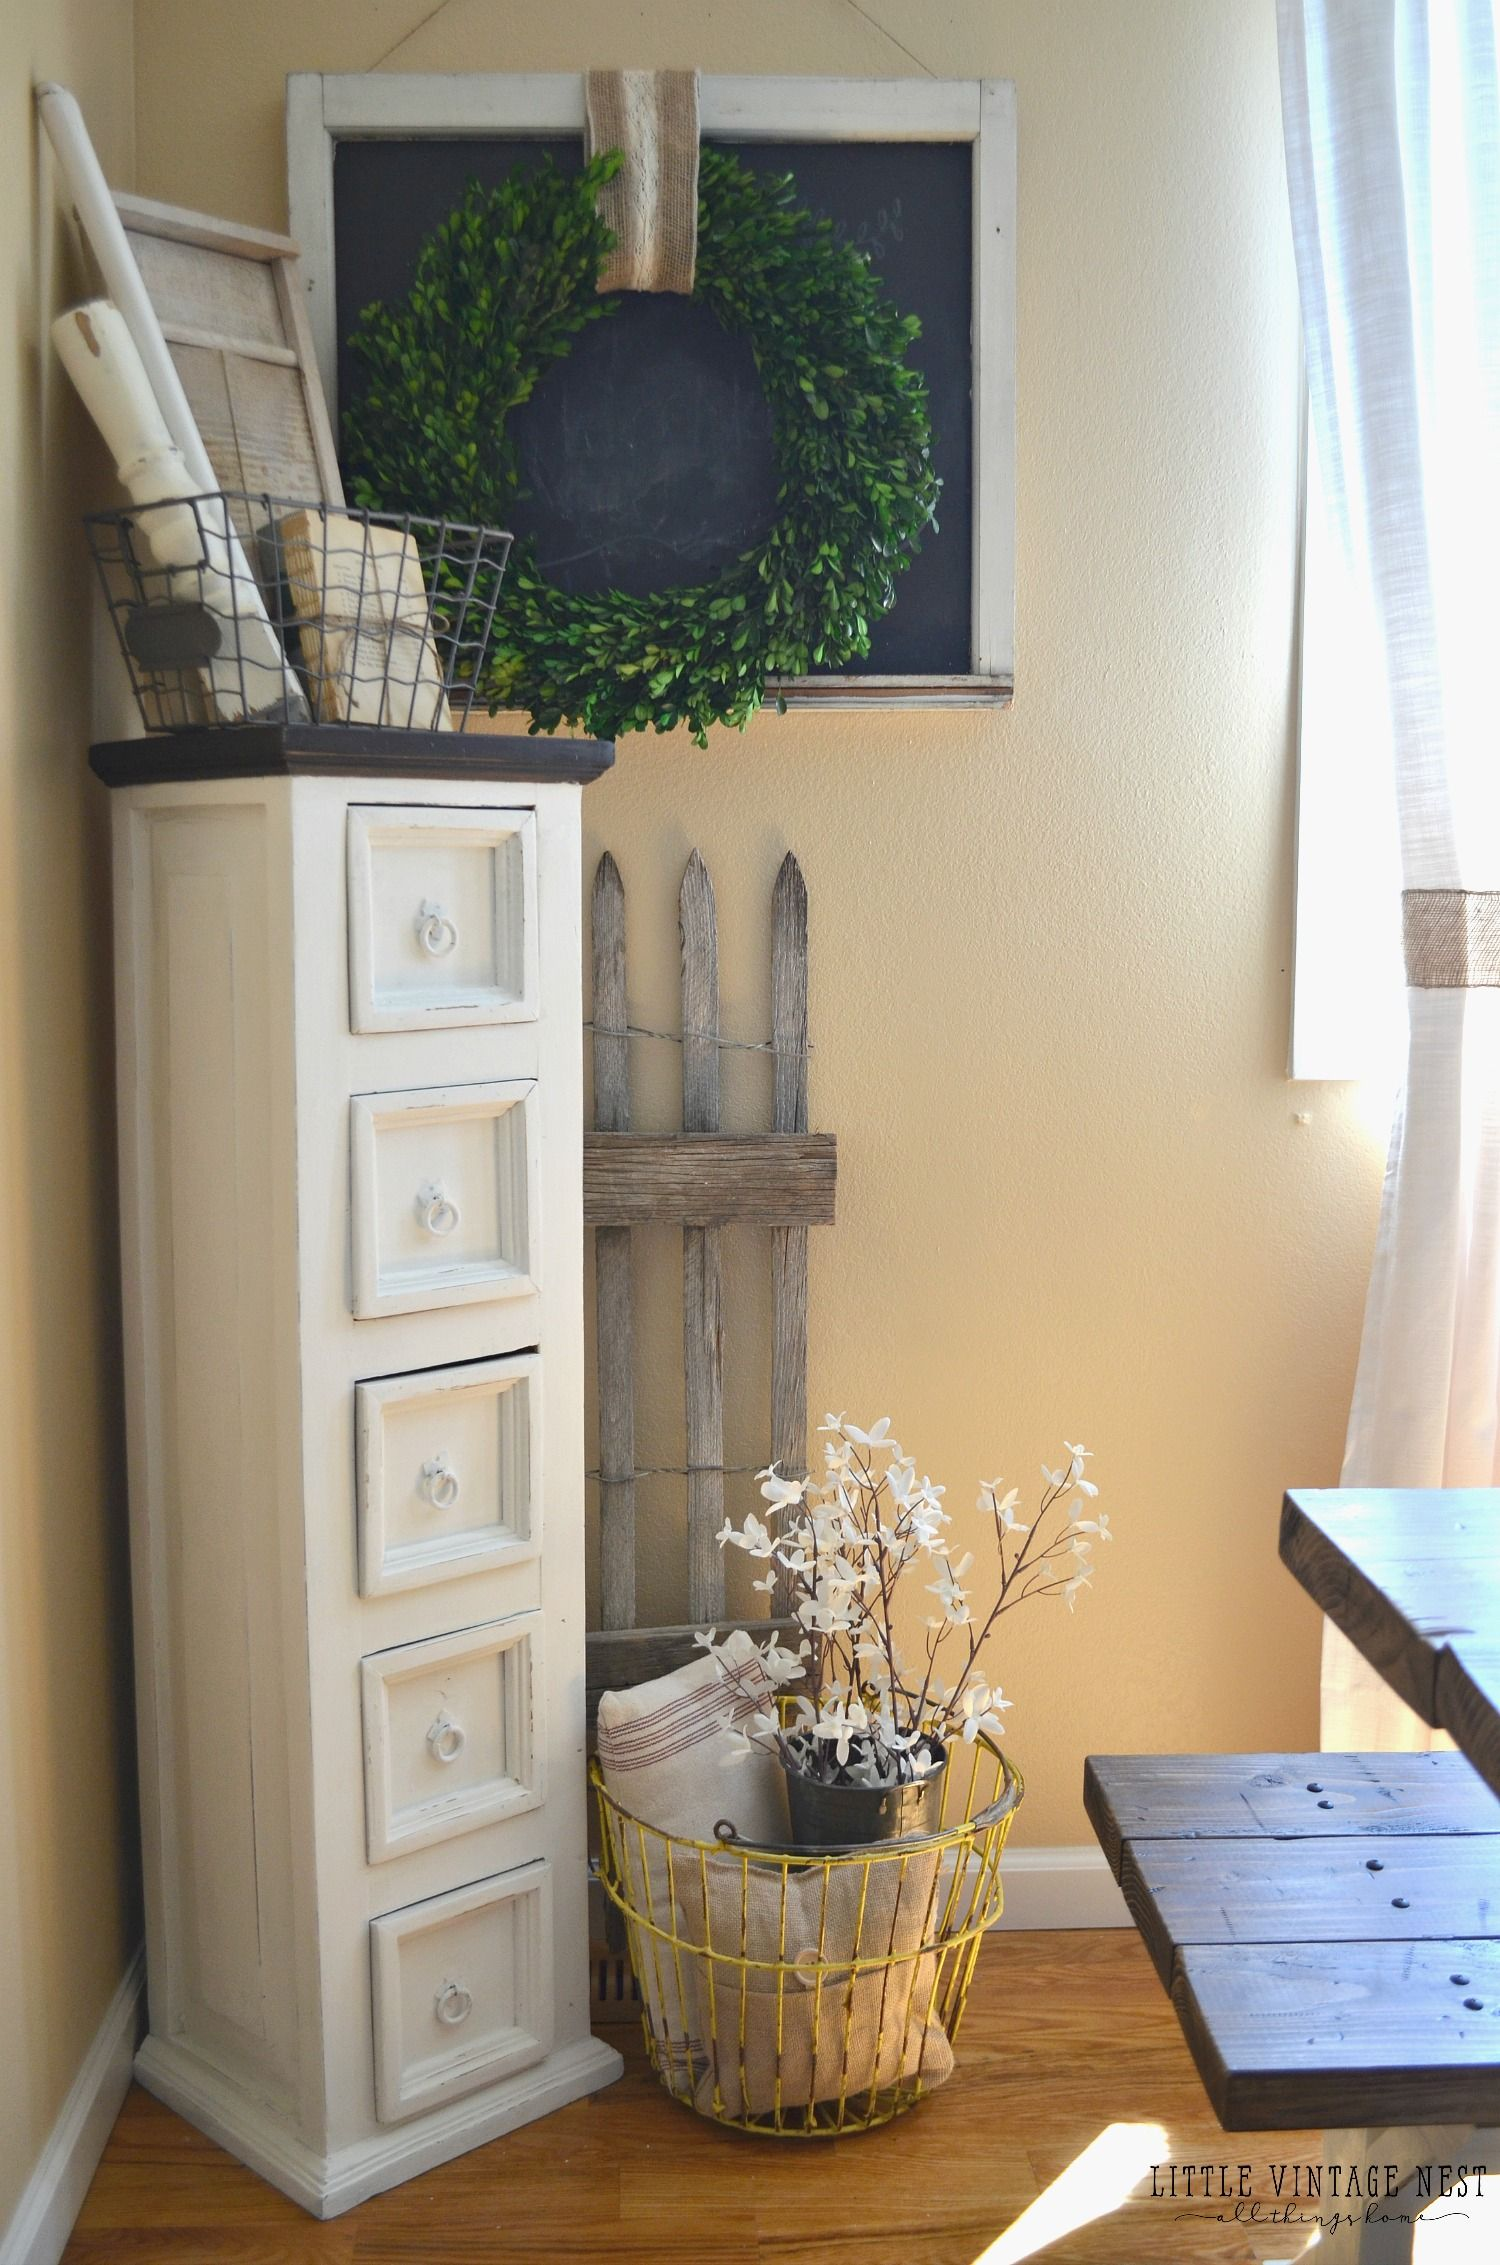 7 Practical Ways to Refresh Your Home | Wholesale Rustic Home Decor